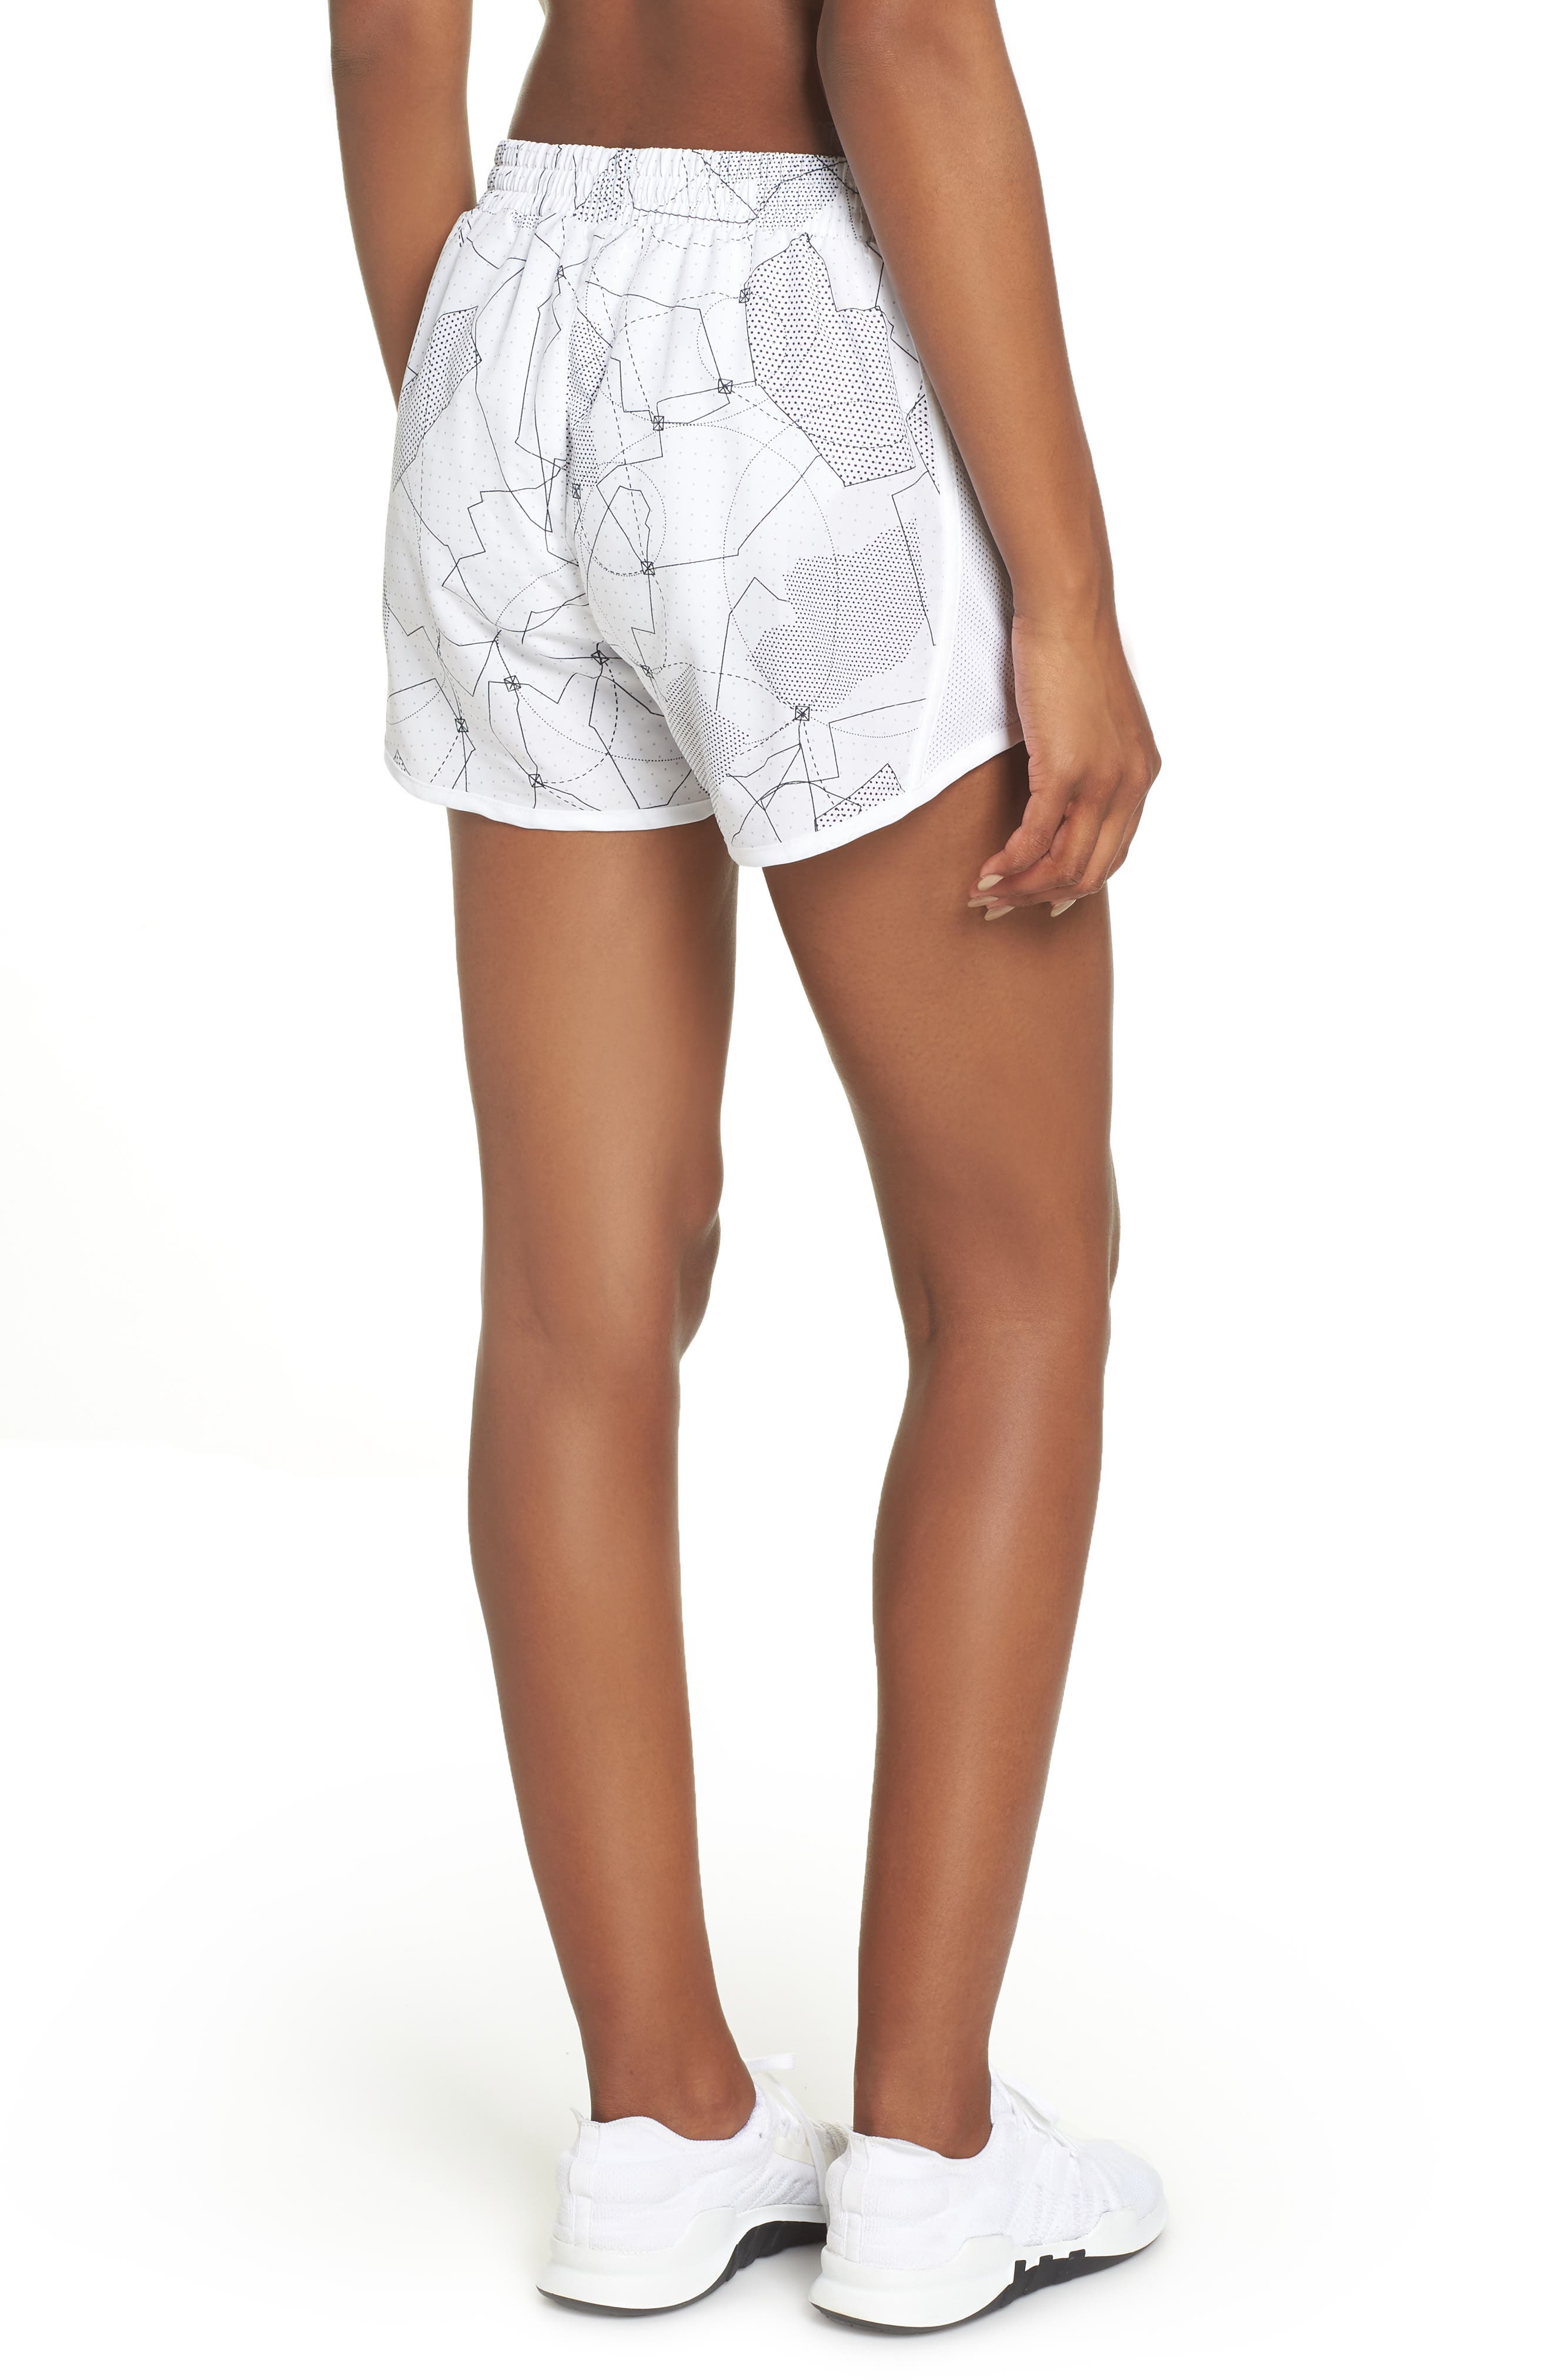 Fly-By Print Shorts,                             Alternate thumbnail 2, color,                             White/ White/ Reflective